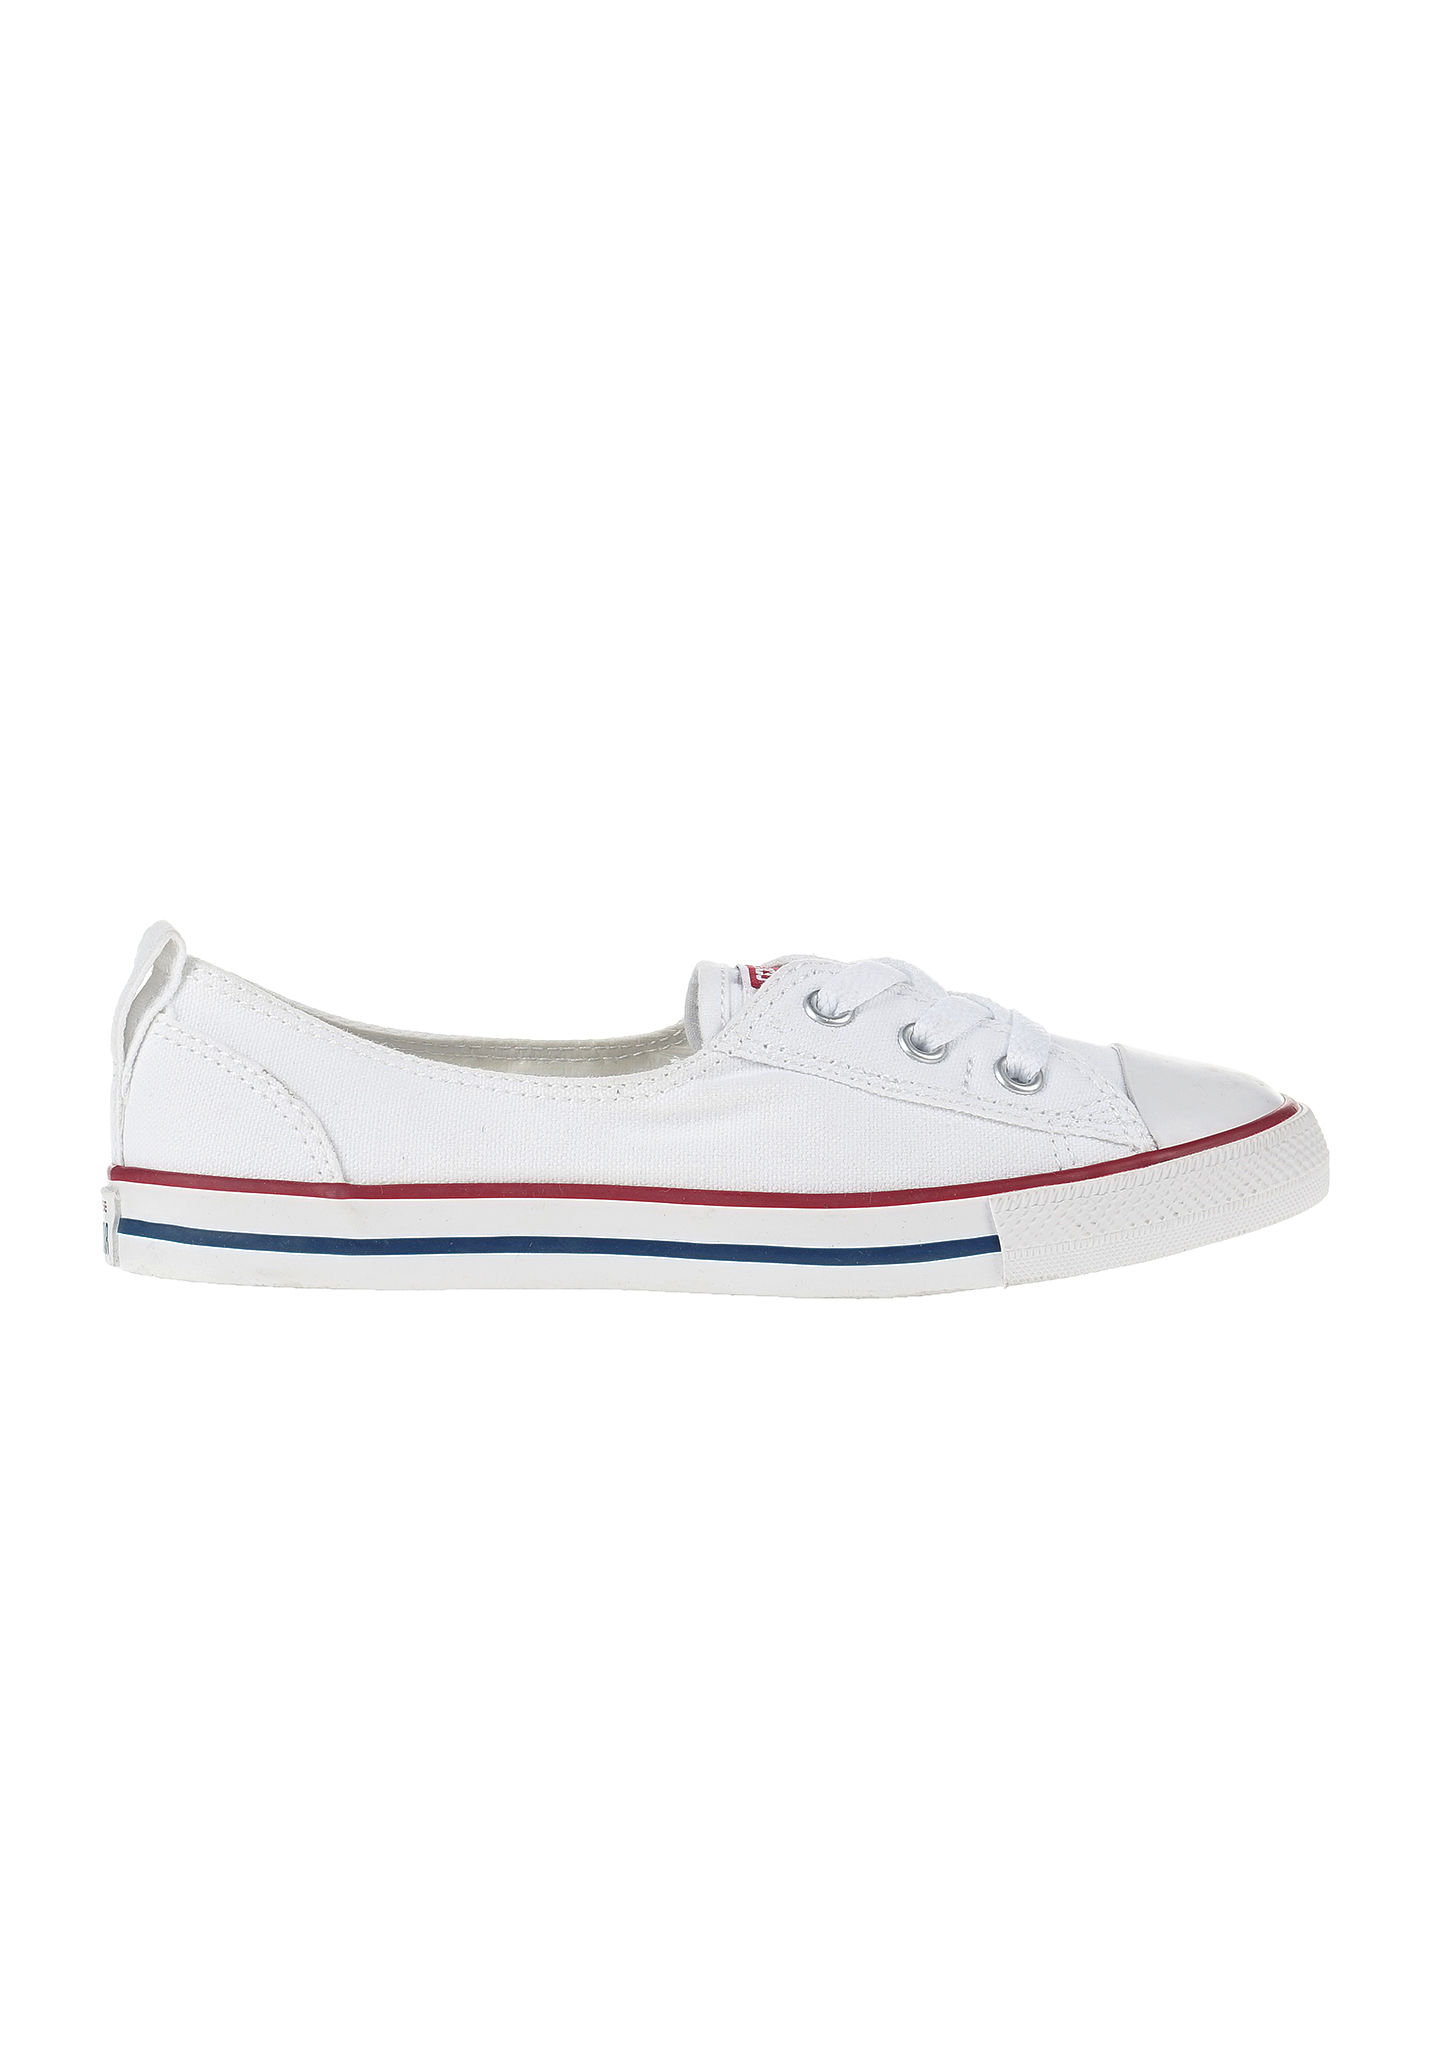 ad81513a7b63 Converse Chuck Taylor All Star Ballet Lace - Sneakers voor Dames - Wit -  Planet Sports